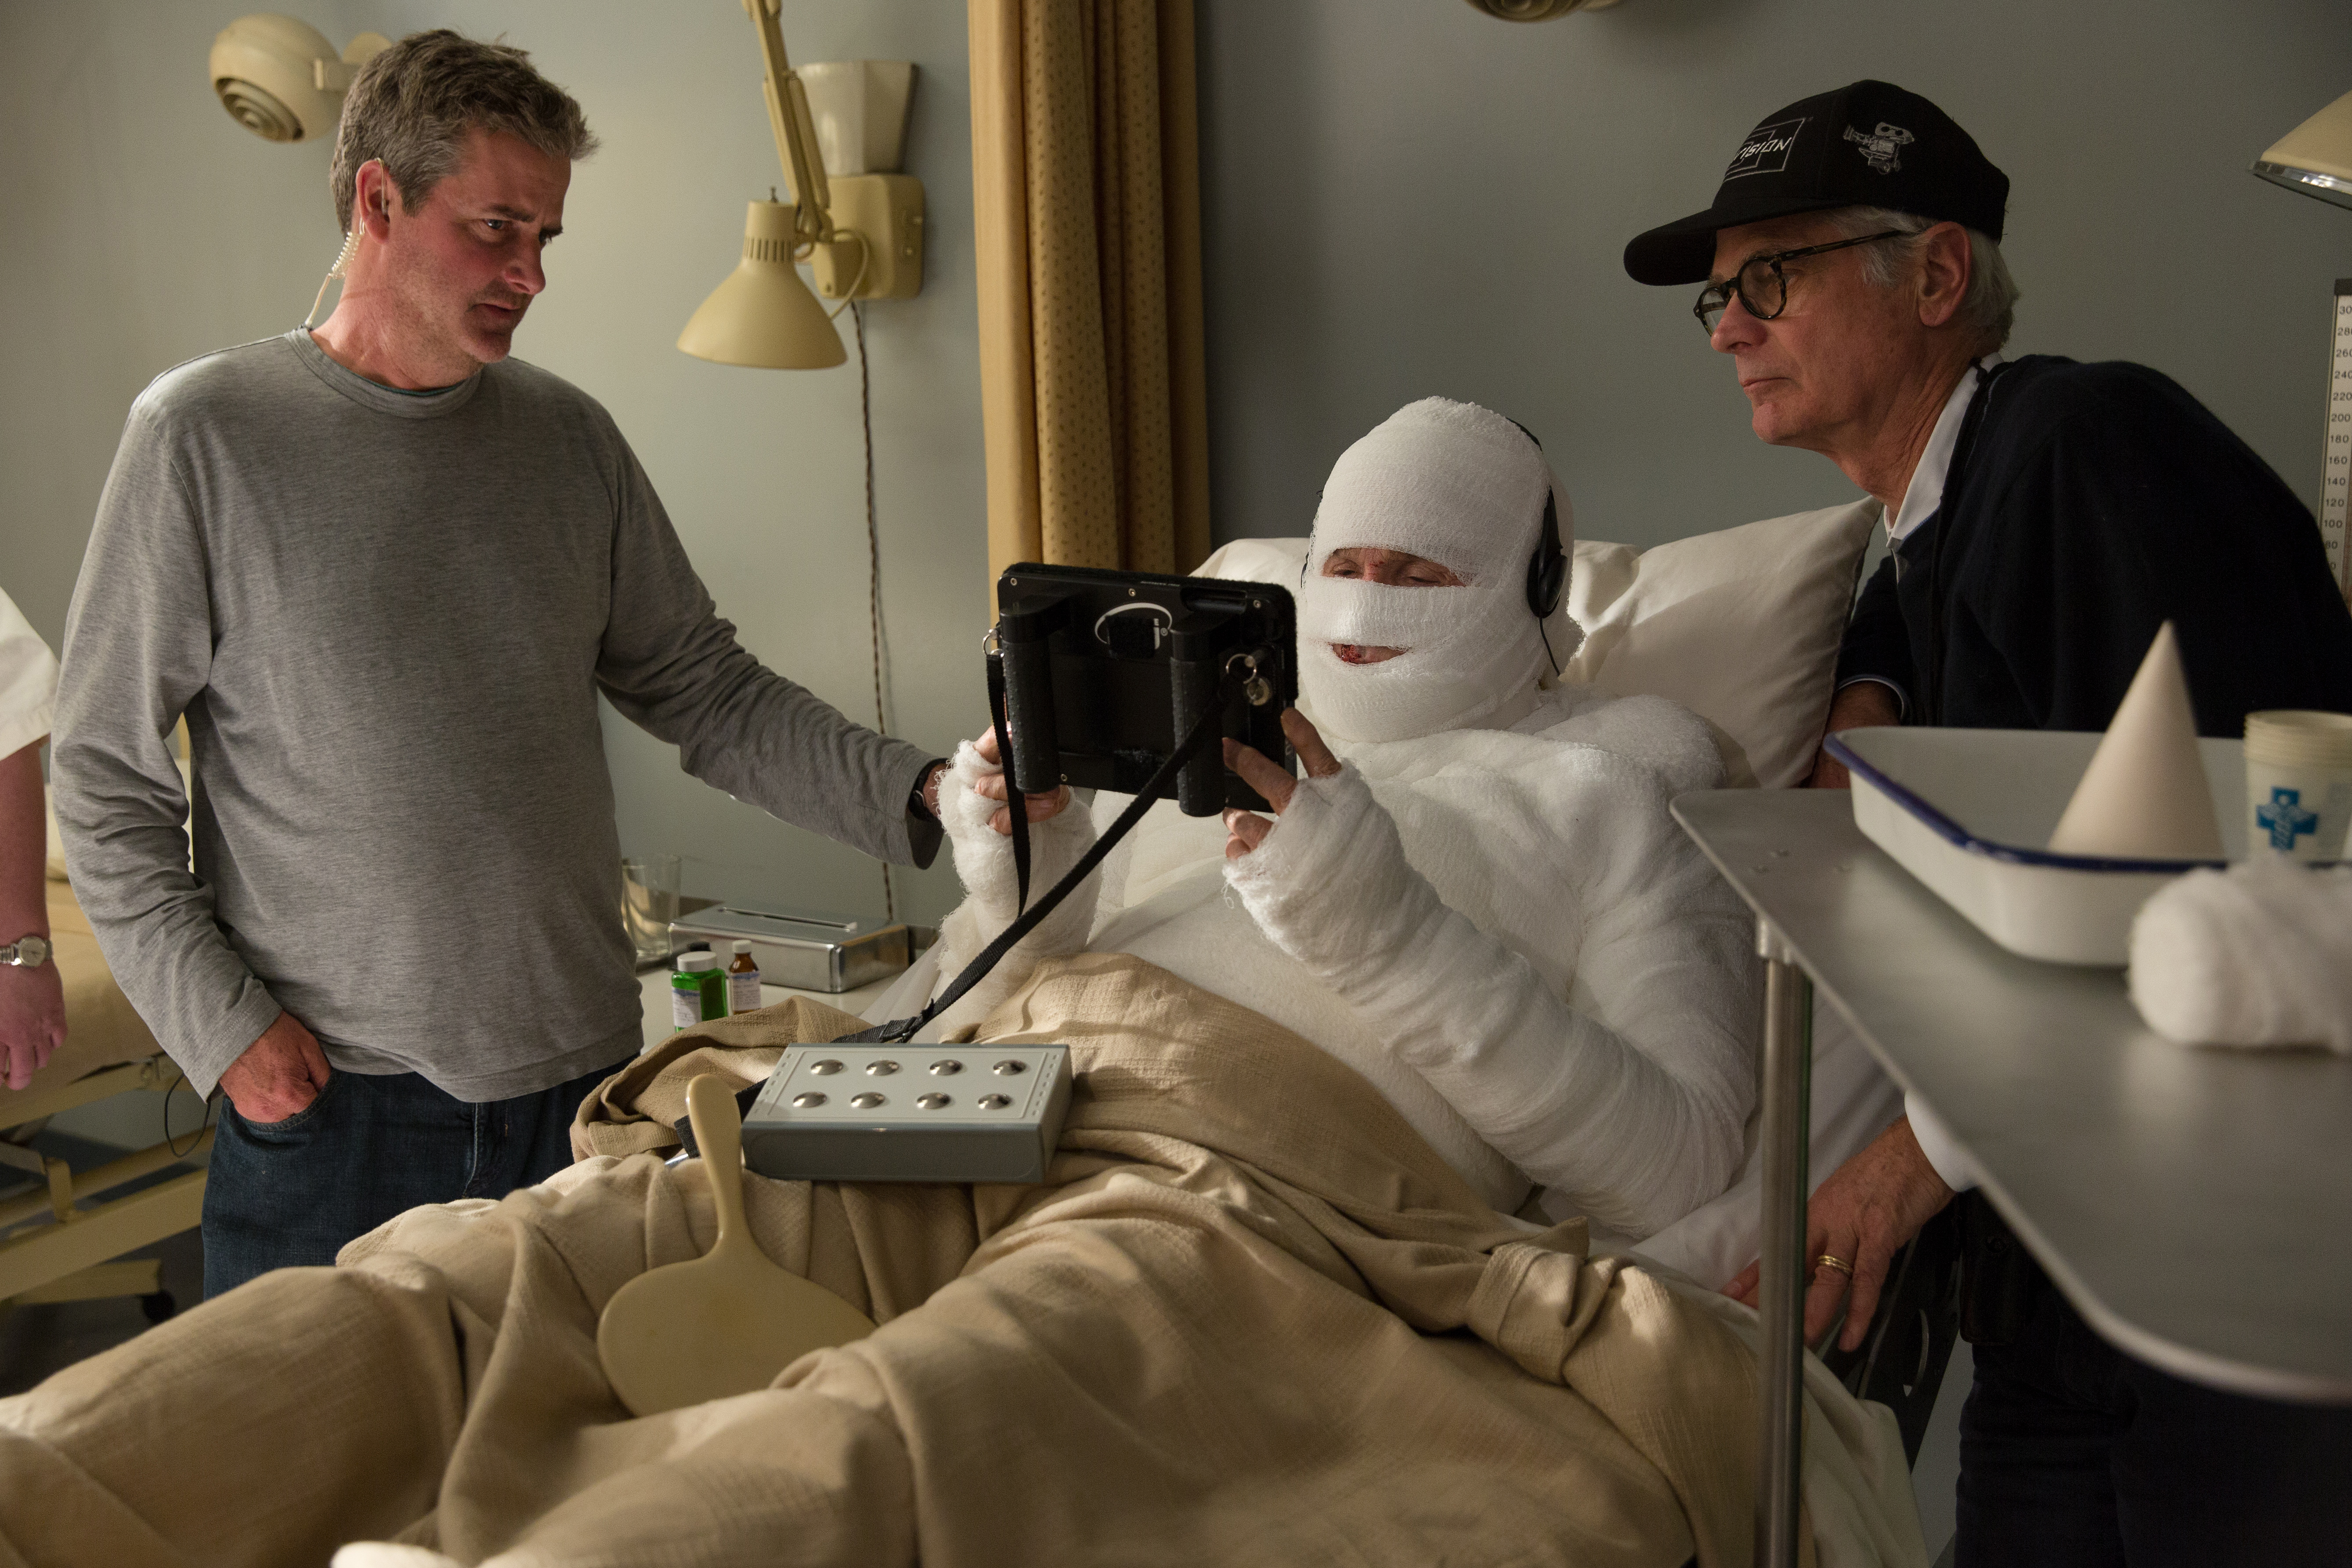 Cinematographer Caleb Deschanel, ASC (right) confers with actor-writer-director-producer Warren Beatty for a scene featuring Hughes in a body cast.